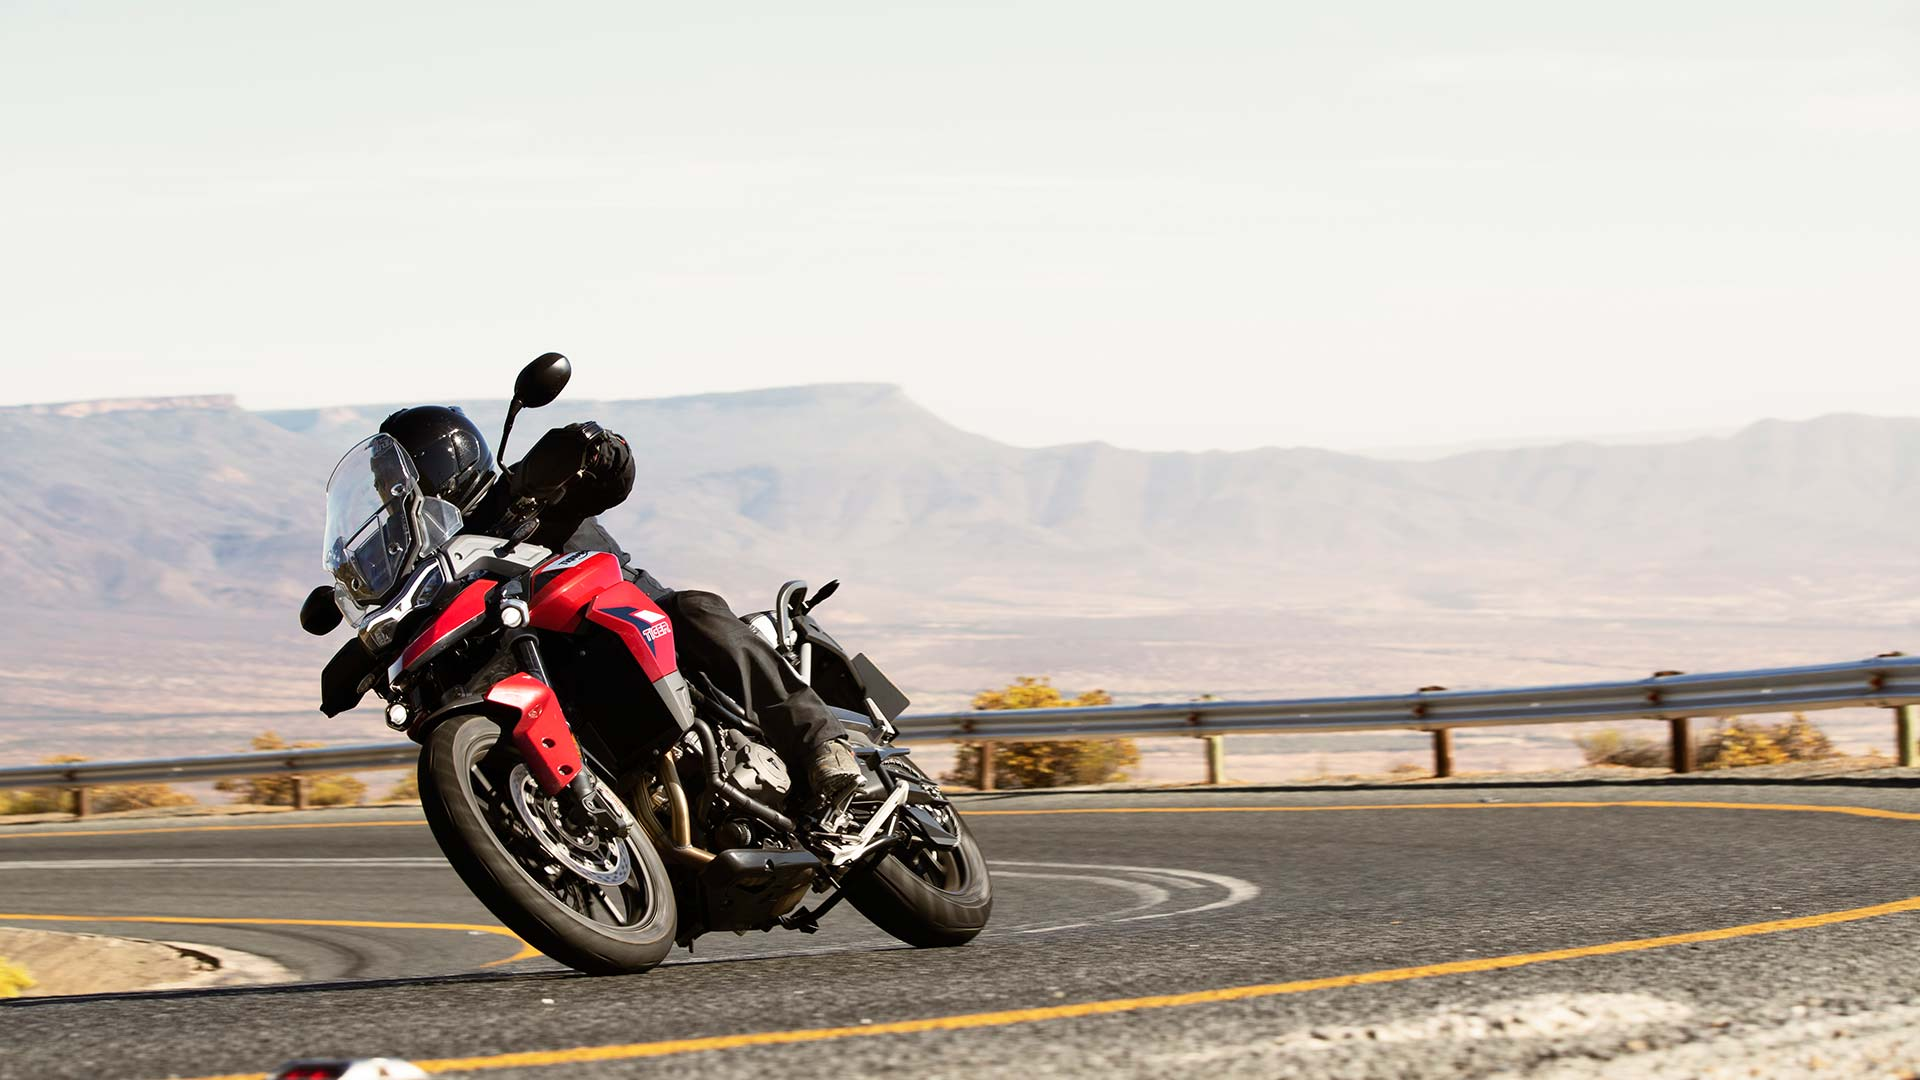 Triumph Tiger 900 GT Pro in Korosi Red powering through the corners of South Africa